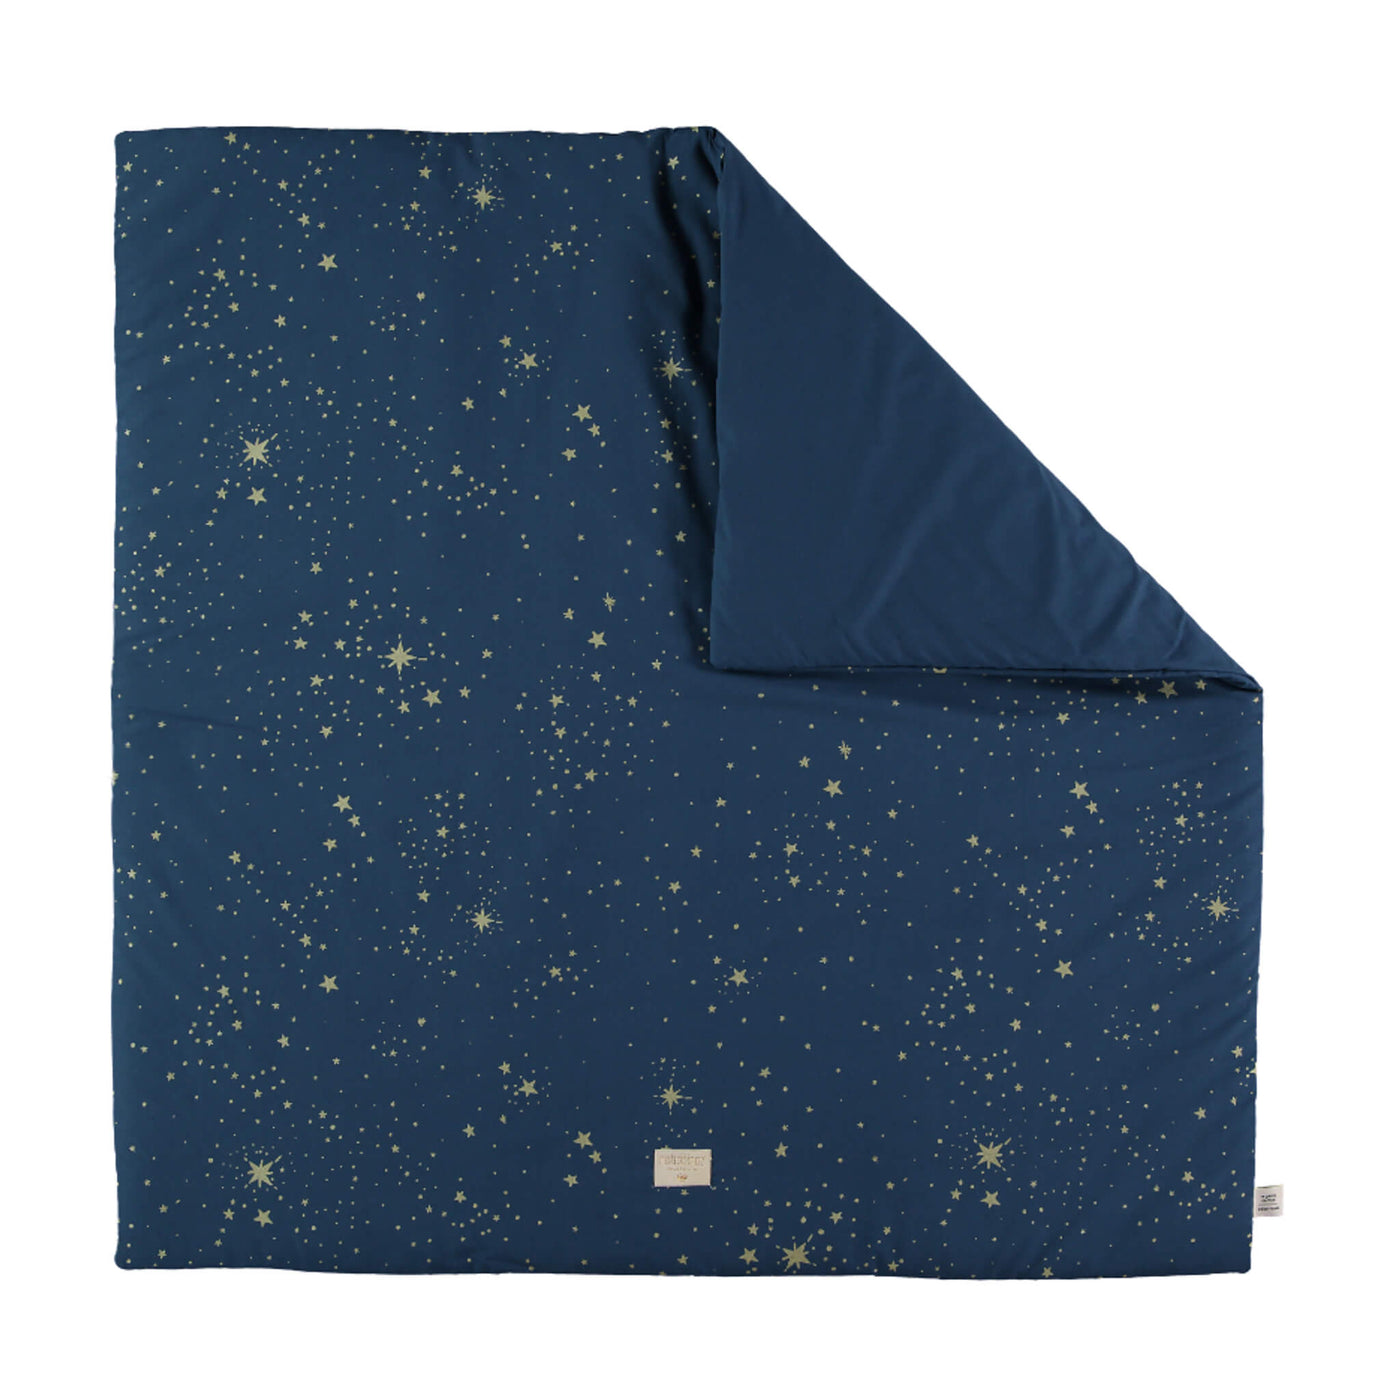 Colorado Square Playmat in Gold Stella/Night Blue